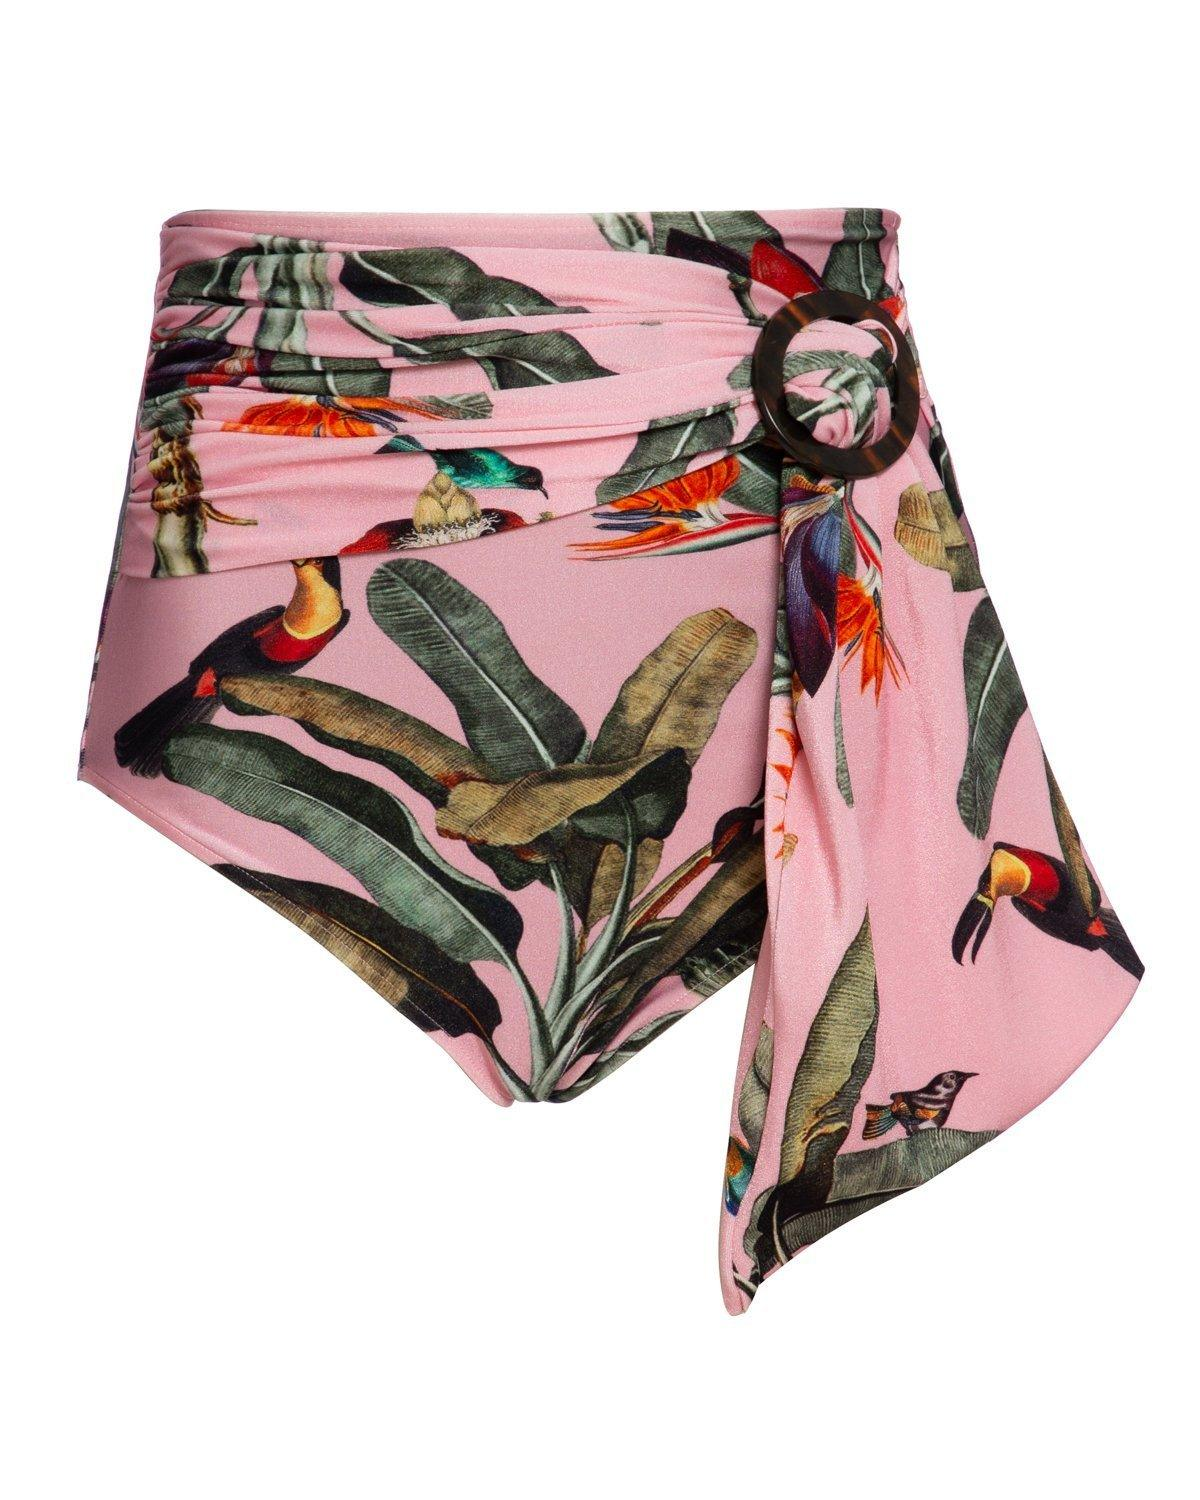 TROPICAL PRINT BELTED BIKINI BOTTOMS